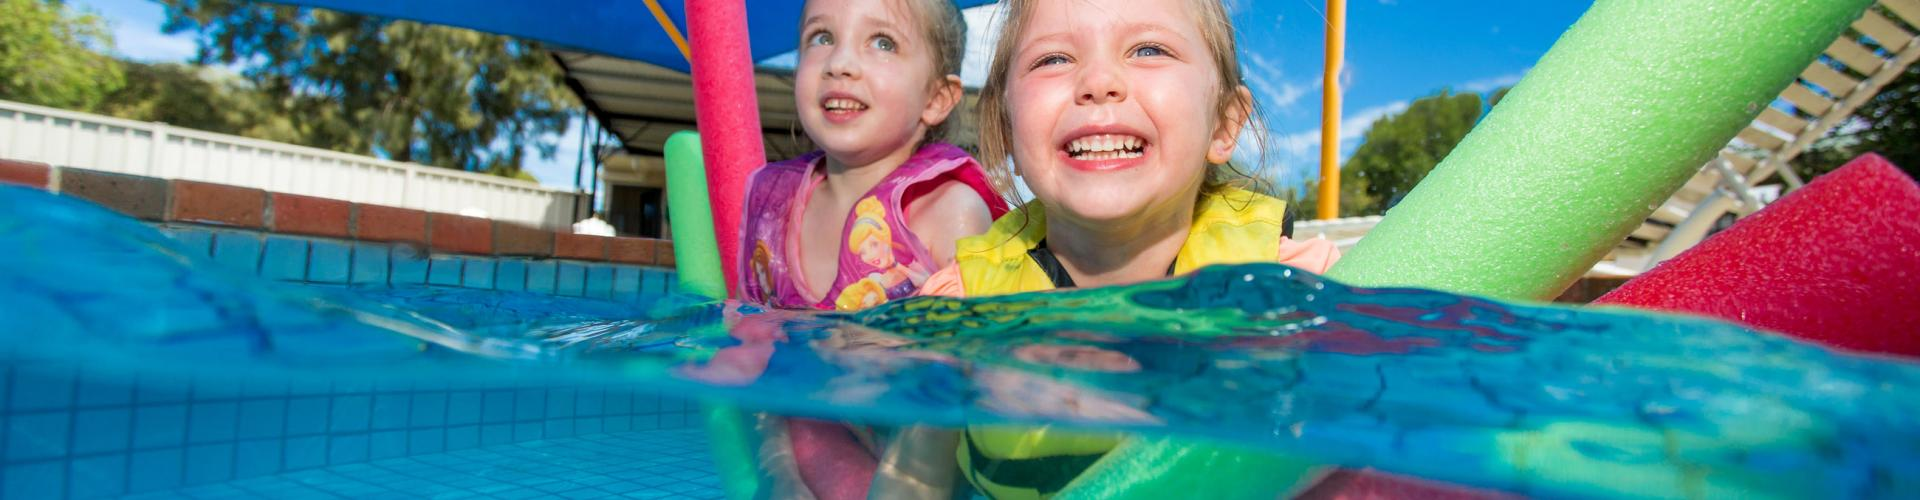 BIG4 Shepparton Park Lane Holiday Park - Kids in the Pool